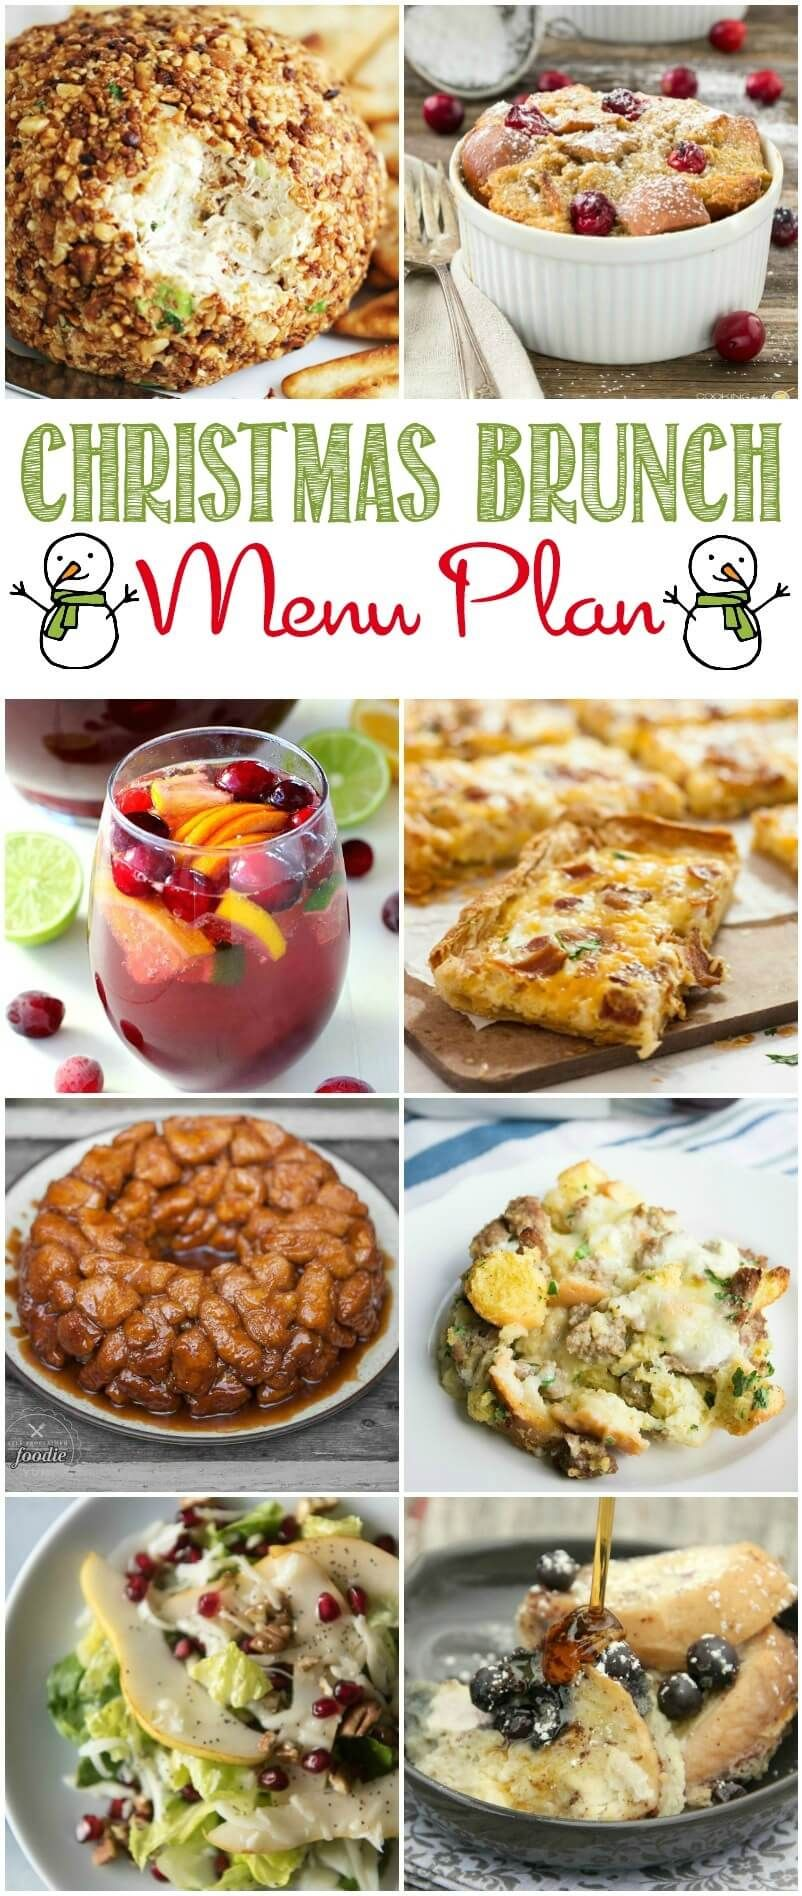 easy christmas brunch recipes and menu plan menuplan holidays christmas recipes